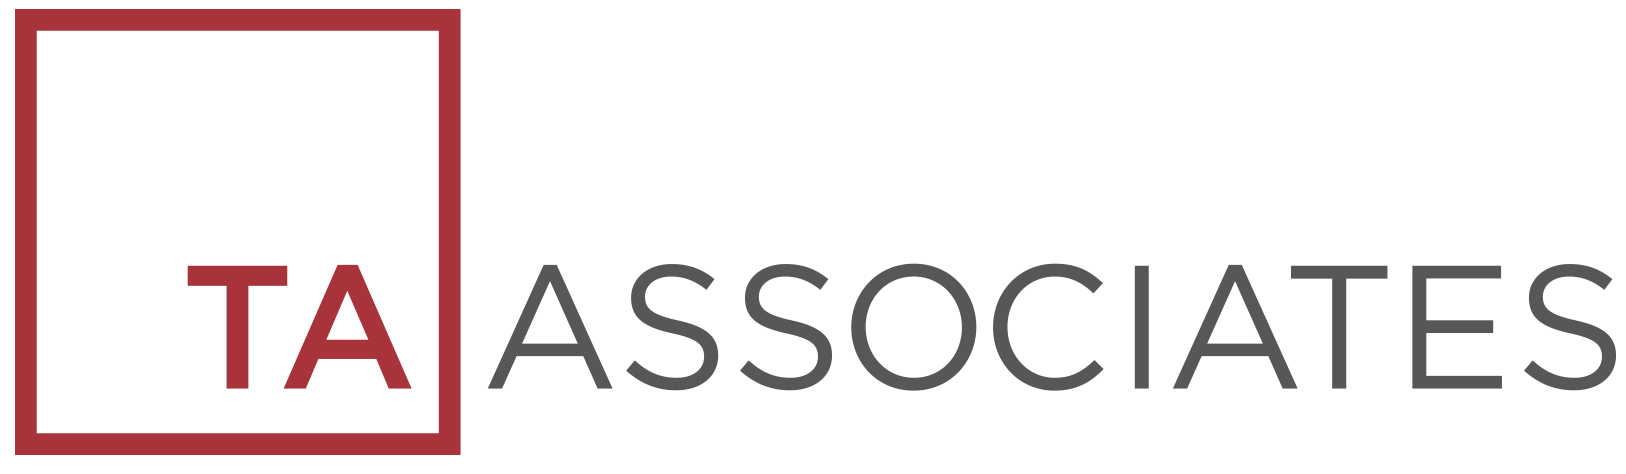 Ta Associates A Leading Global Growth Private Equity Firm